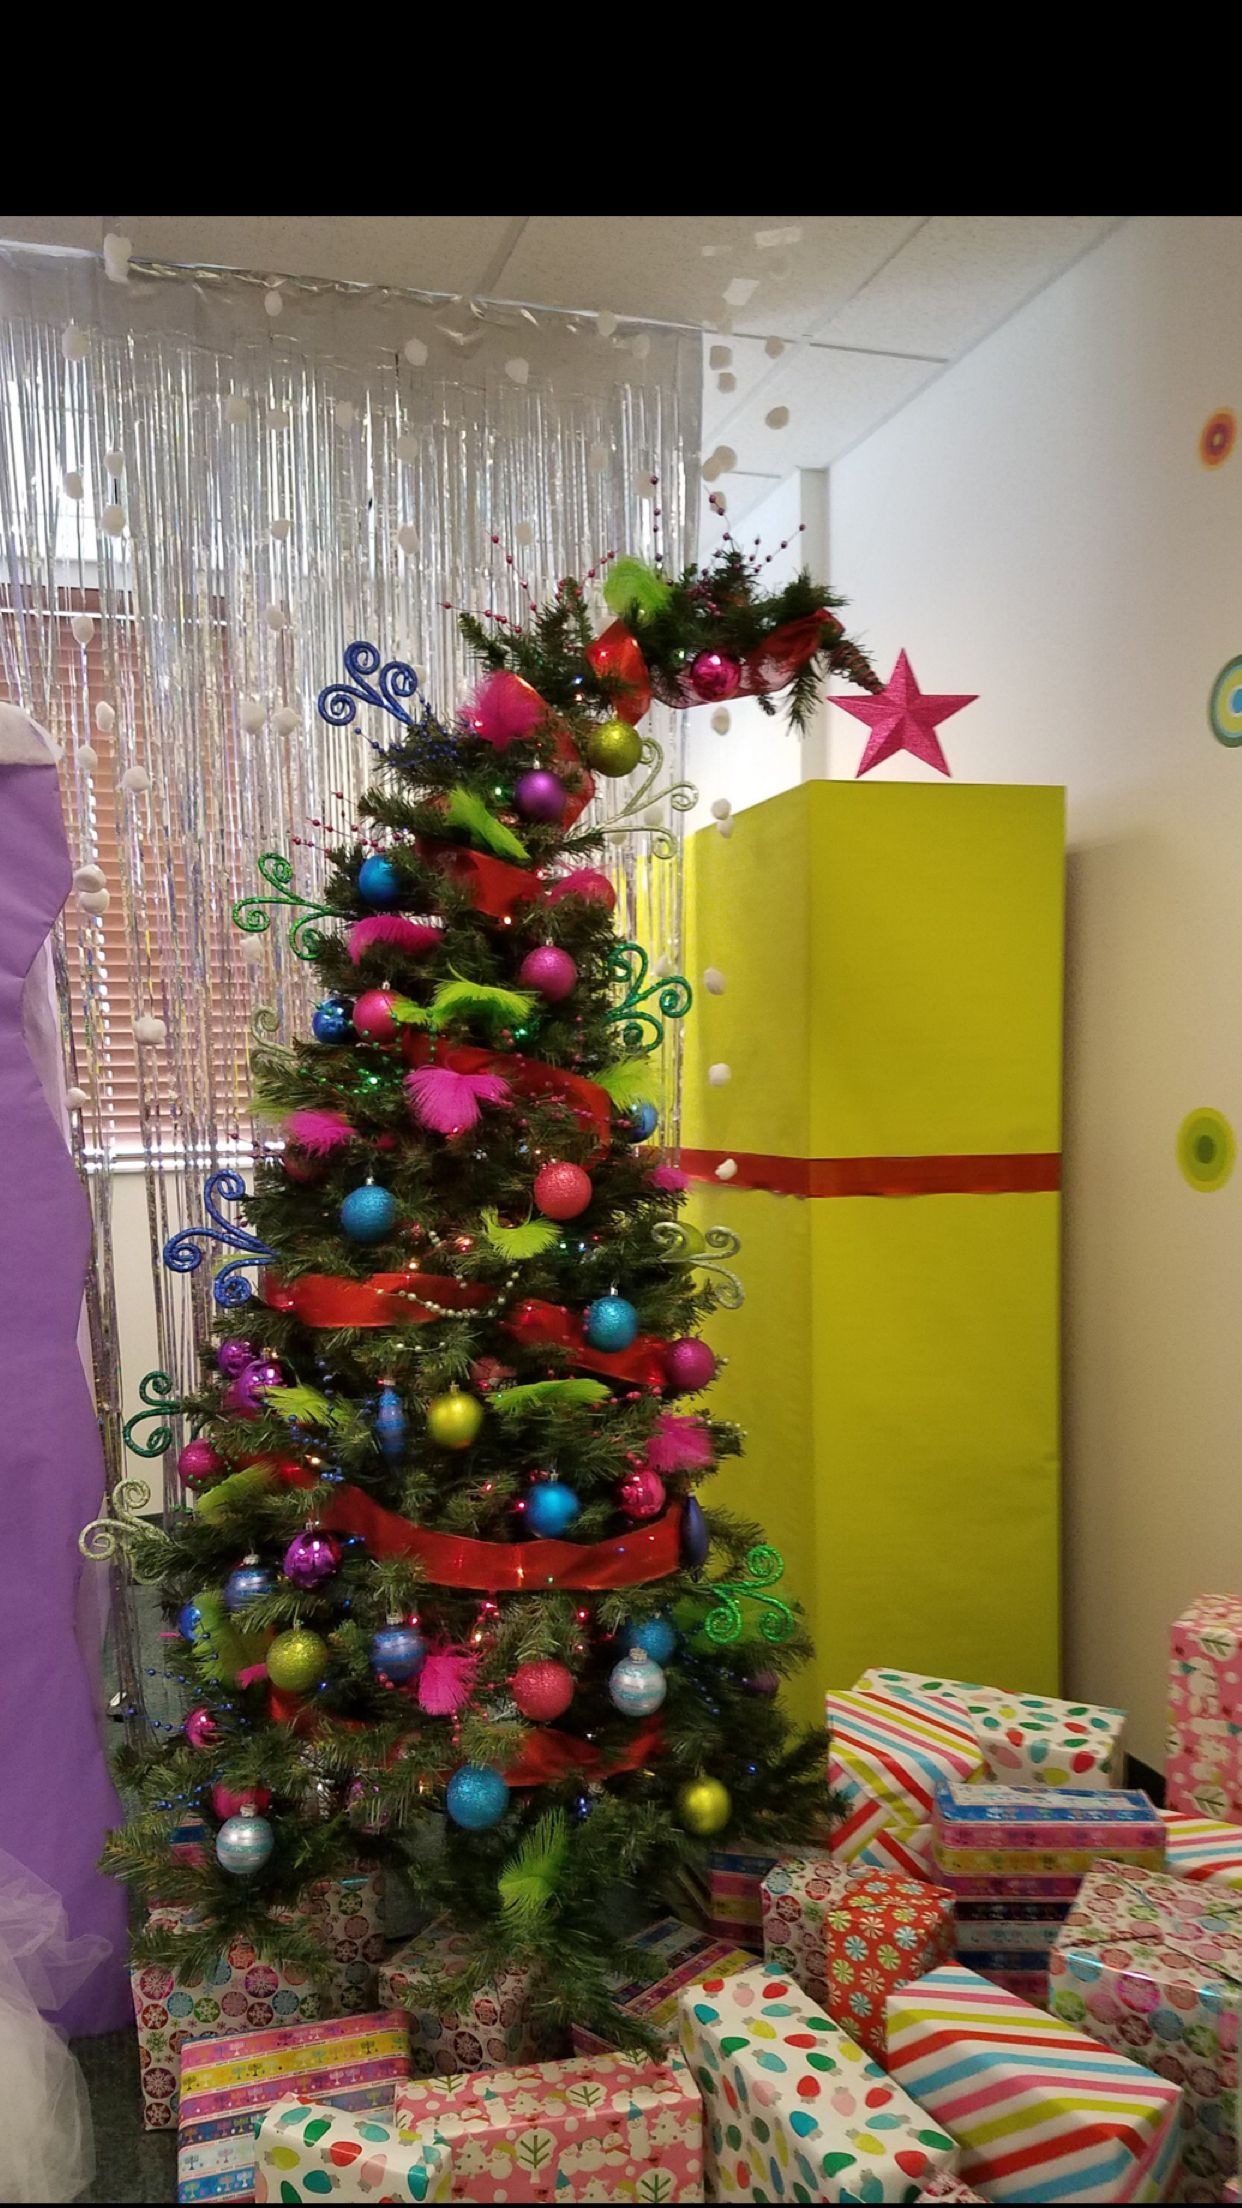 grinch stole christmas office decorations cubicle whoville office decorations how the grinch stole christmas